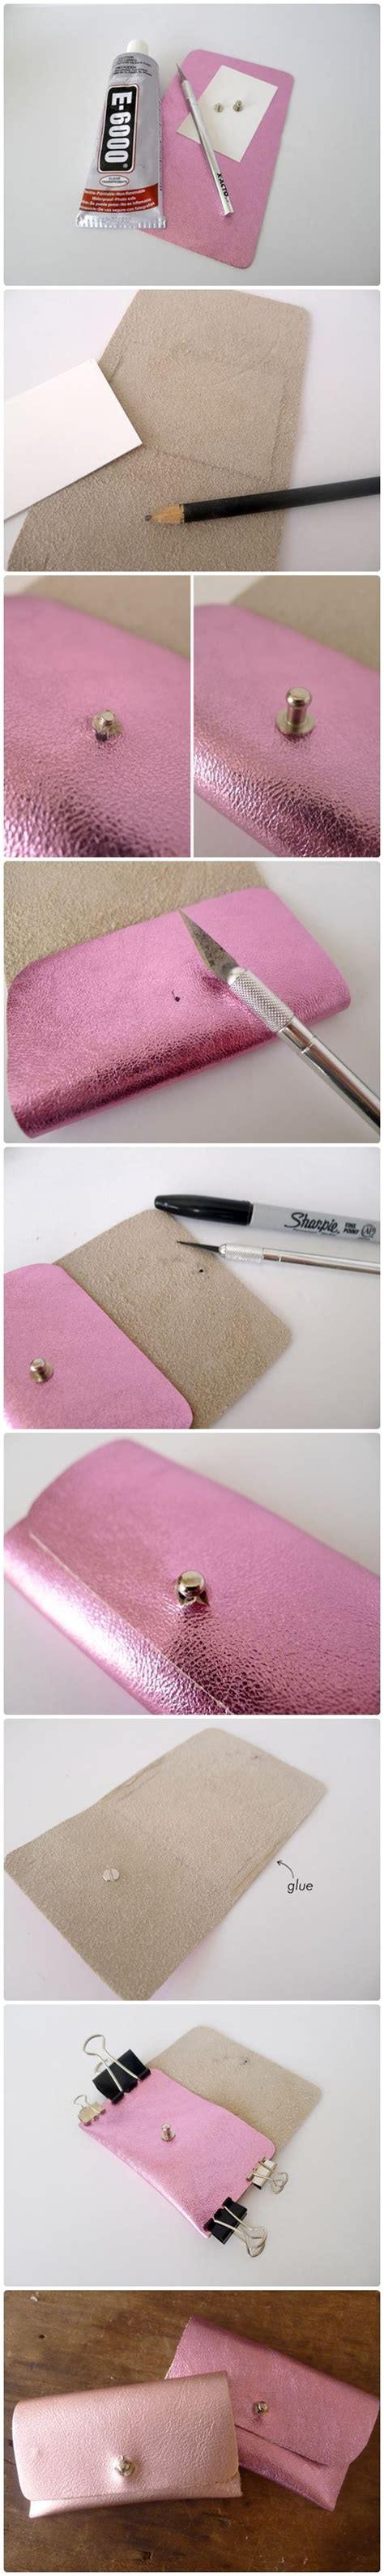 business card holder ideas 1000 ideas about business card holders on